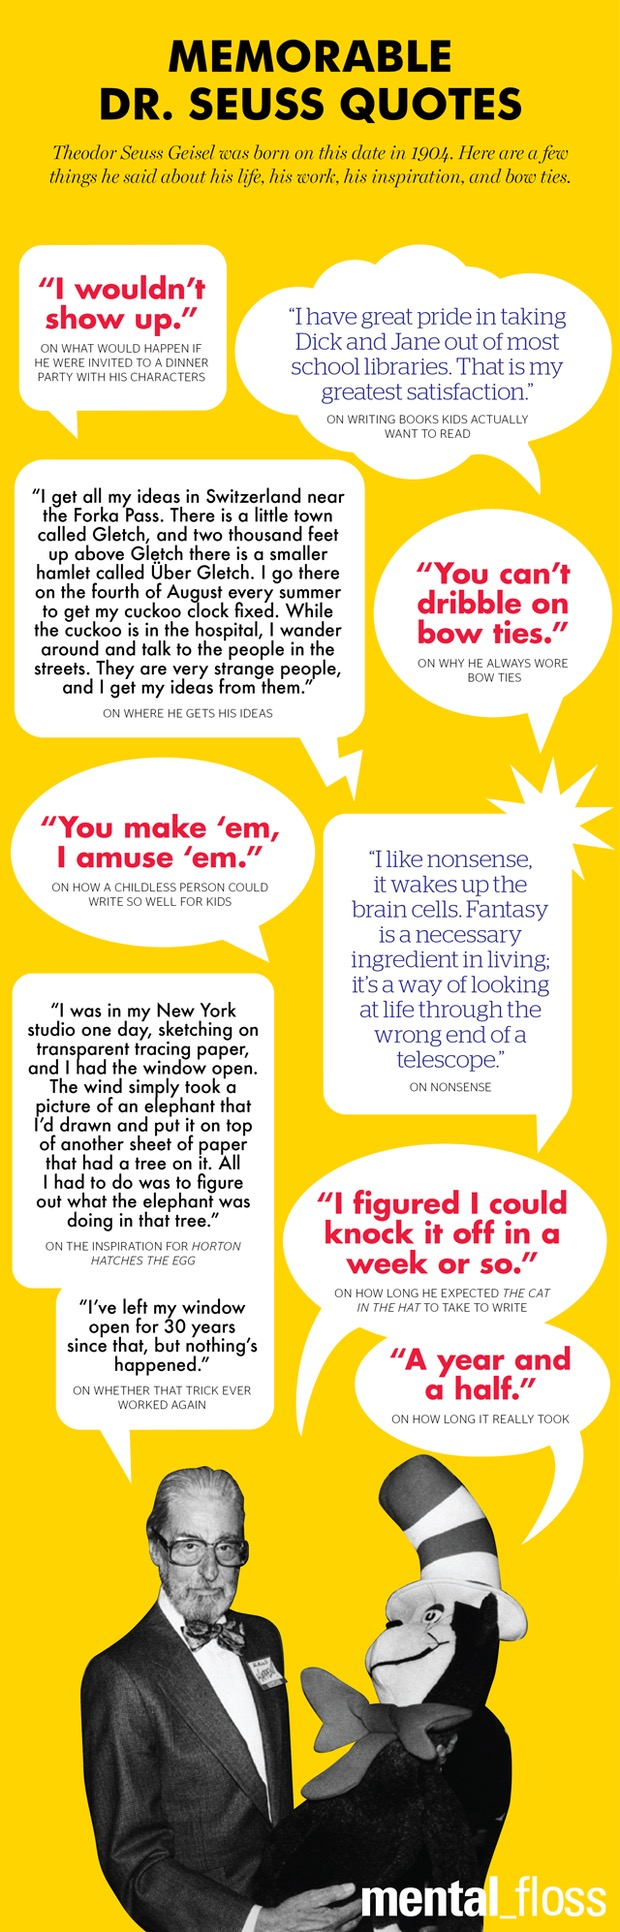 Memorable quotes from Dr Seuss #infographic